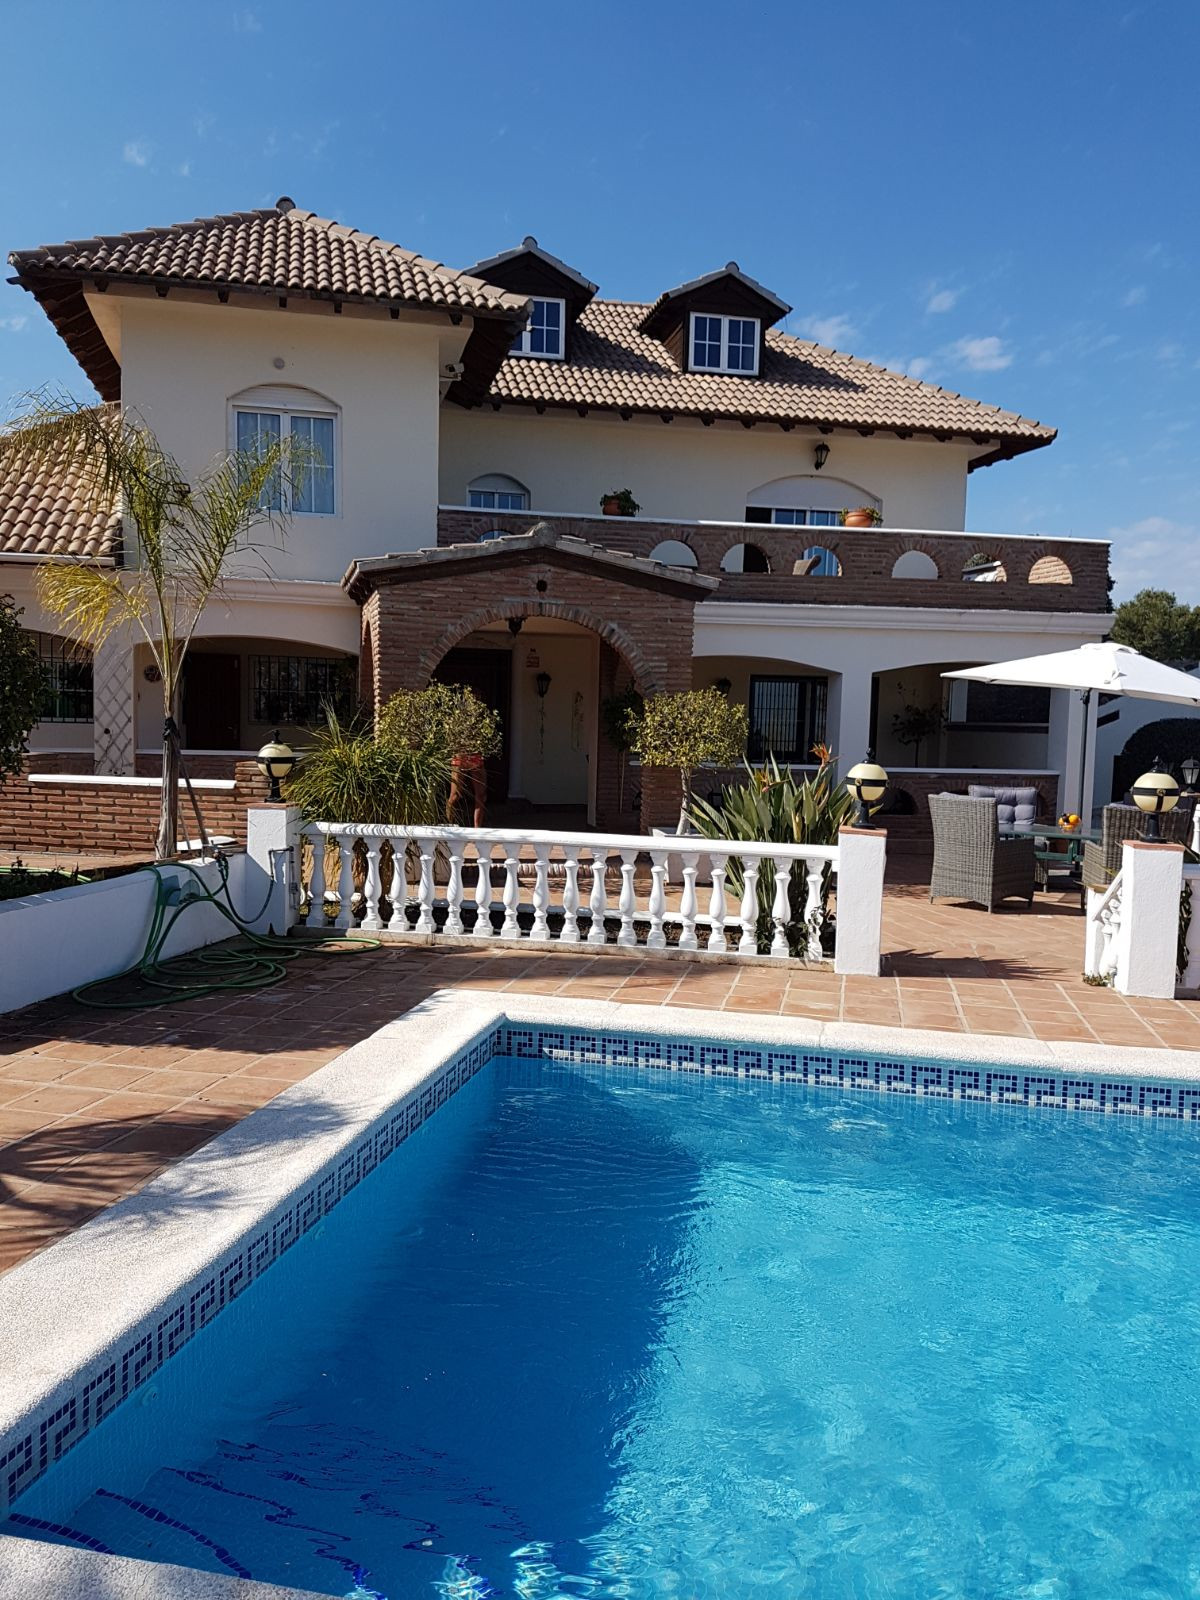 EXCEPTIONAL & TRULY BEAUTIFUL 3 BEDROOM VILLA LOCATED IN A STUNNING SETTING WITH A LARGE PRIVATE, Spain